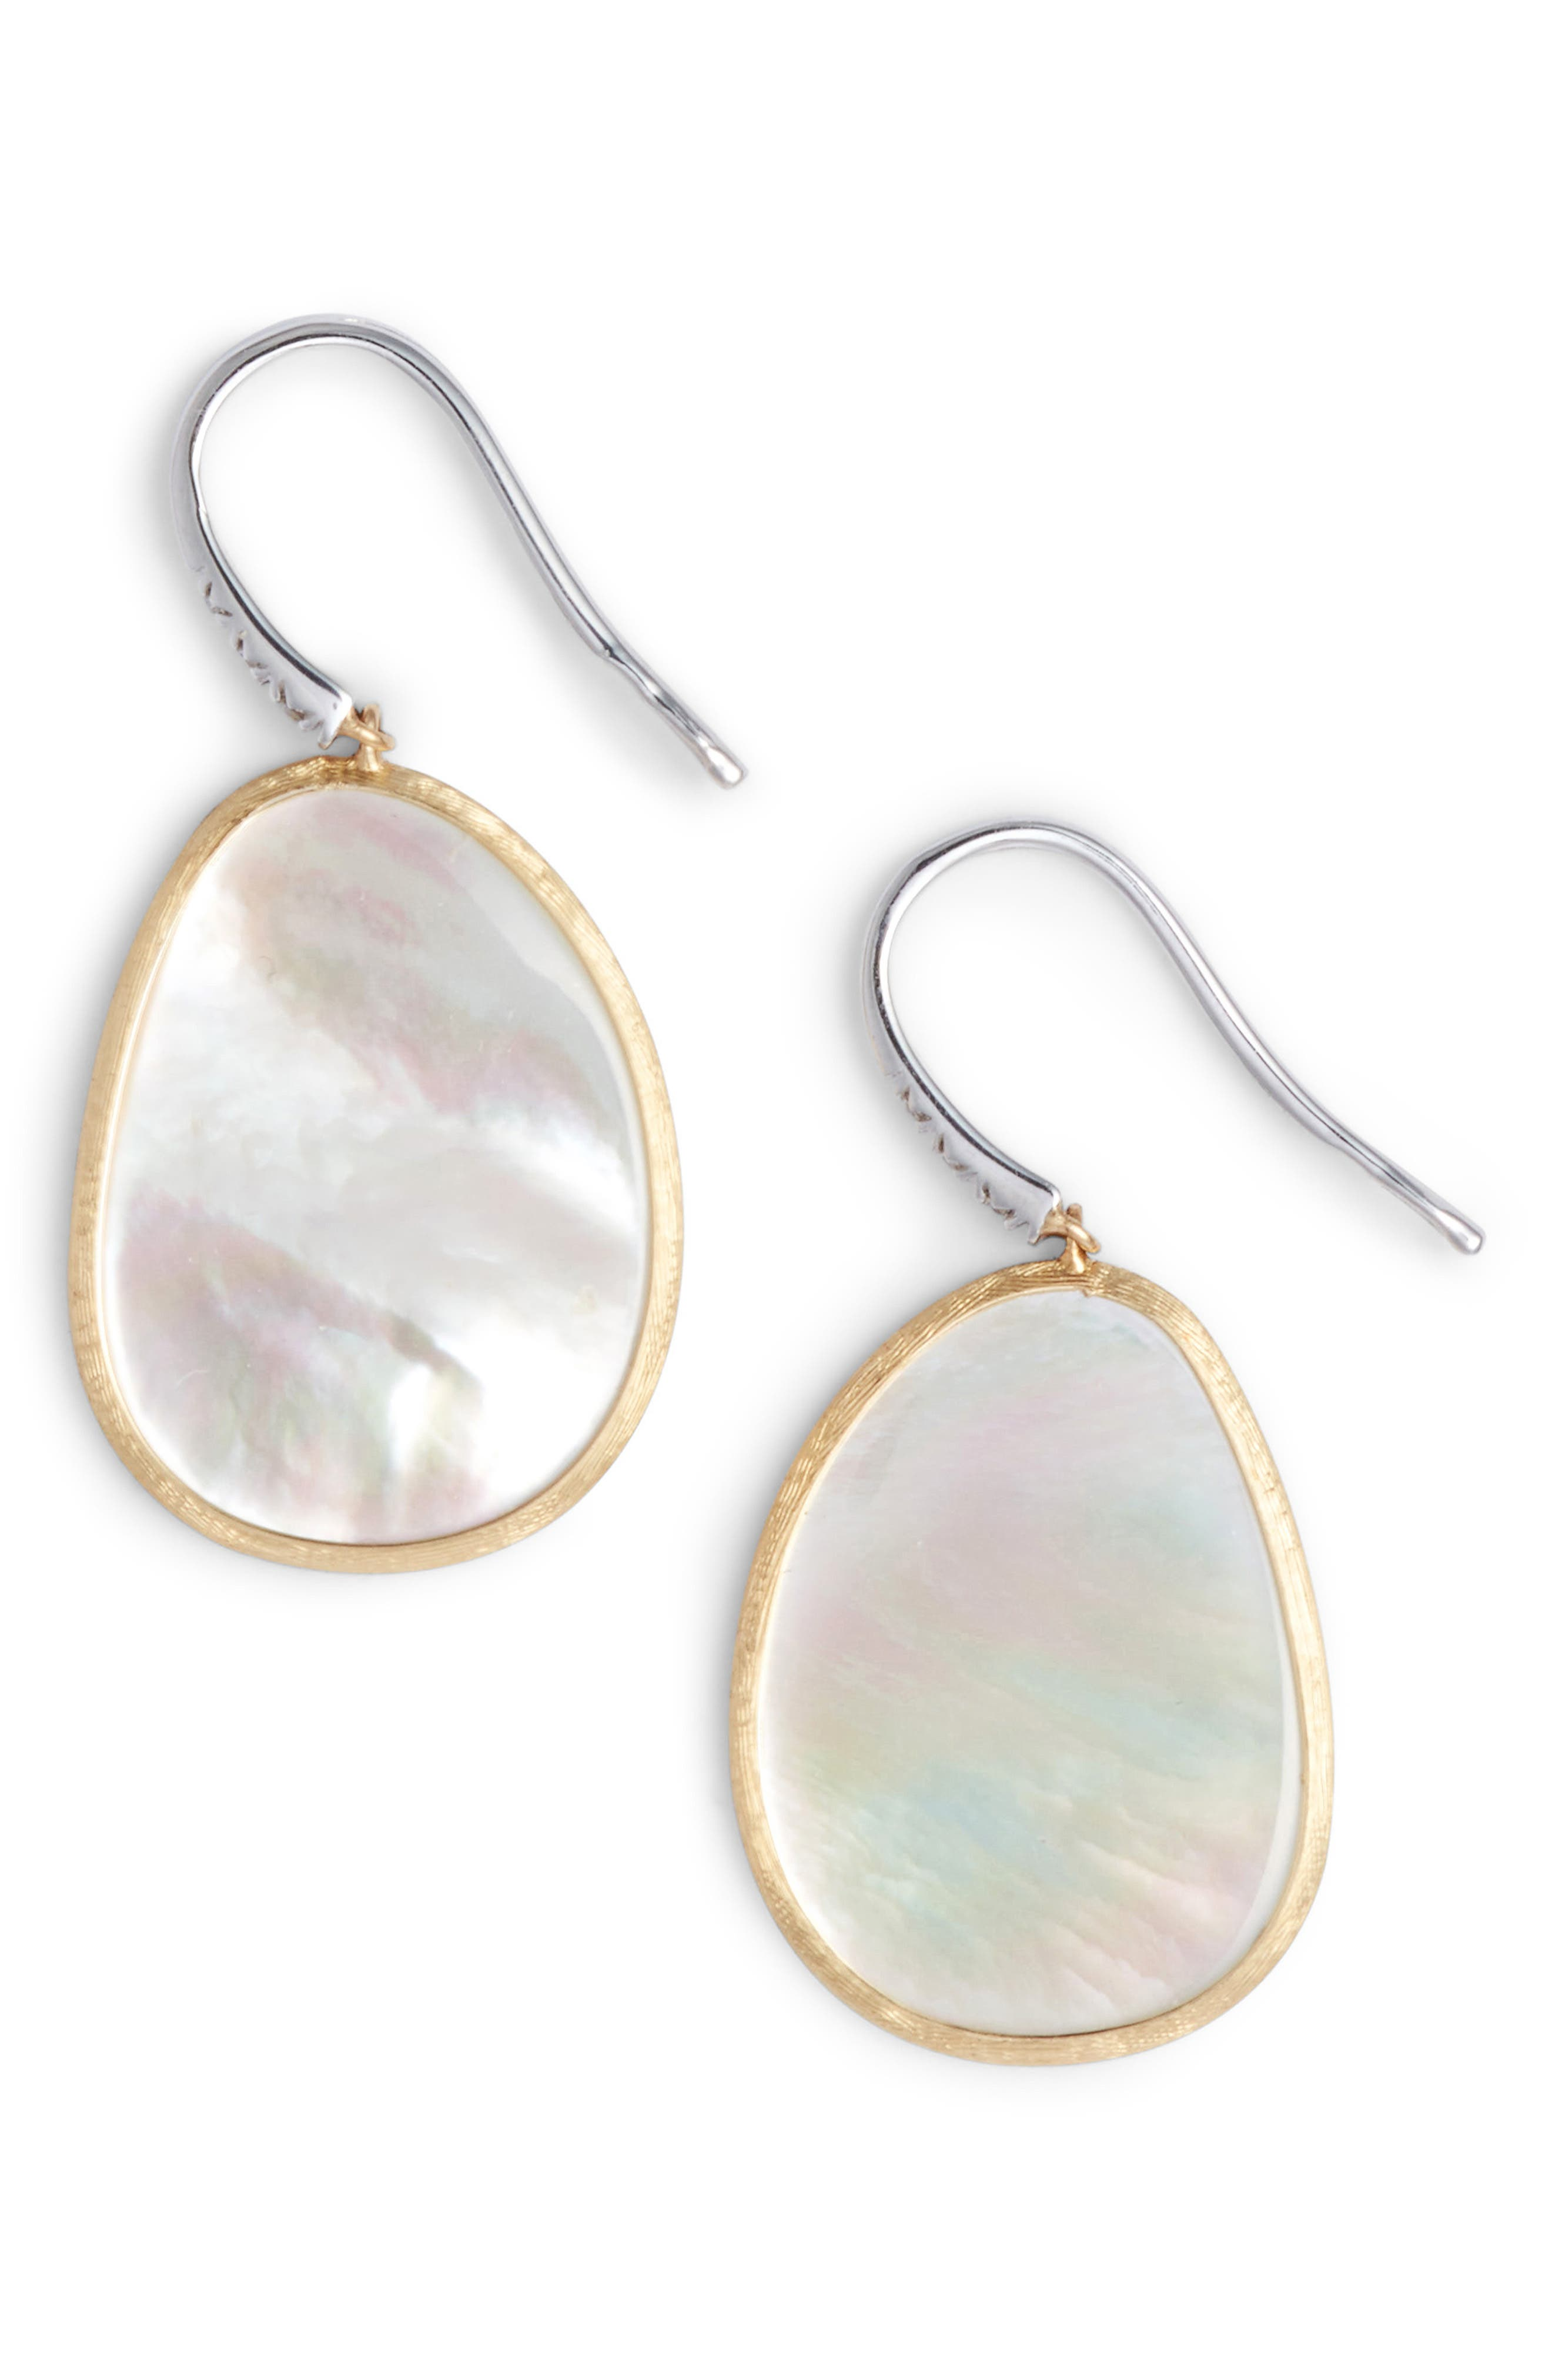 Alternate Image 1 Selected - Marco Bicego Lunaria Mother of Pearl Drop Earrings